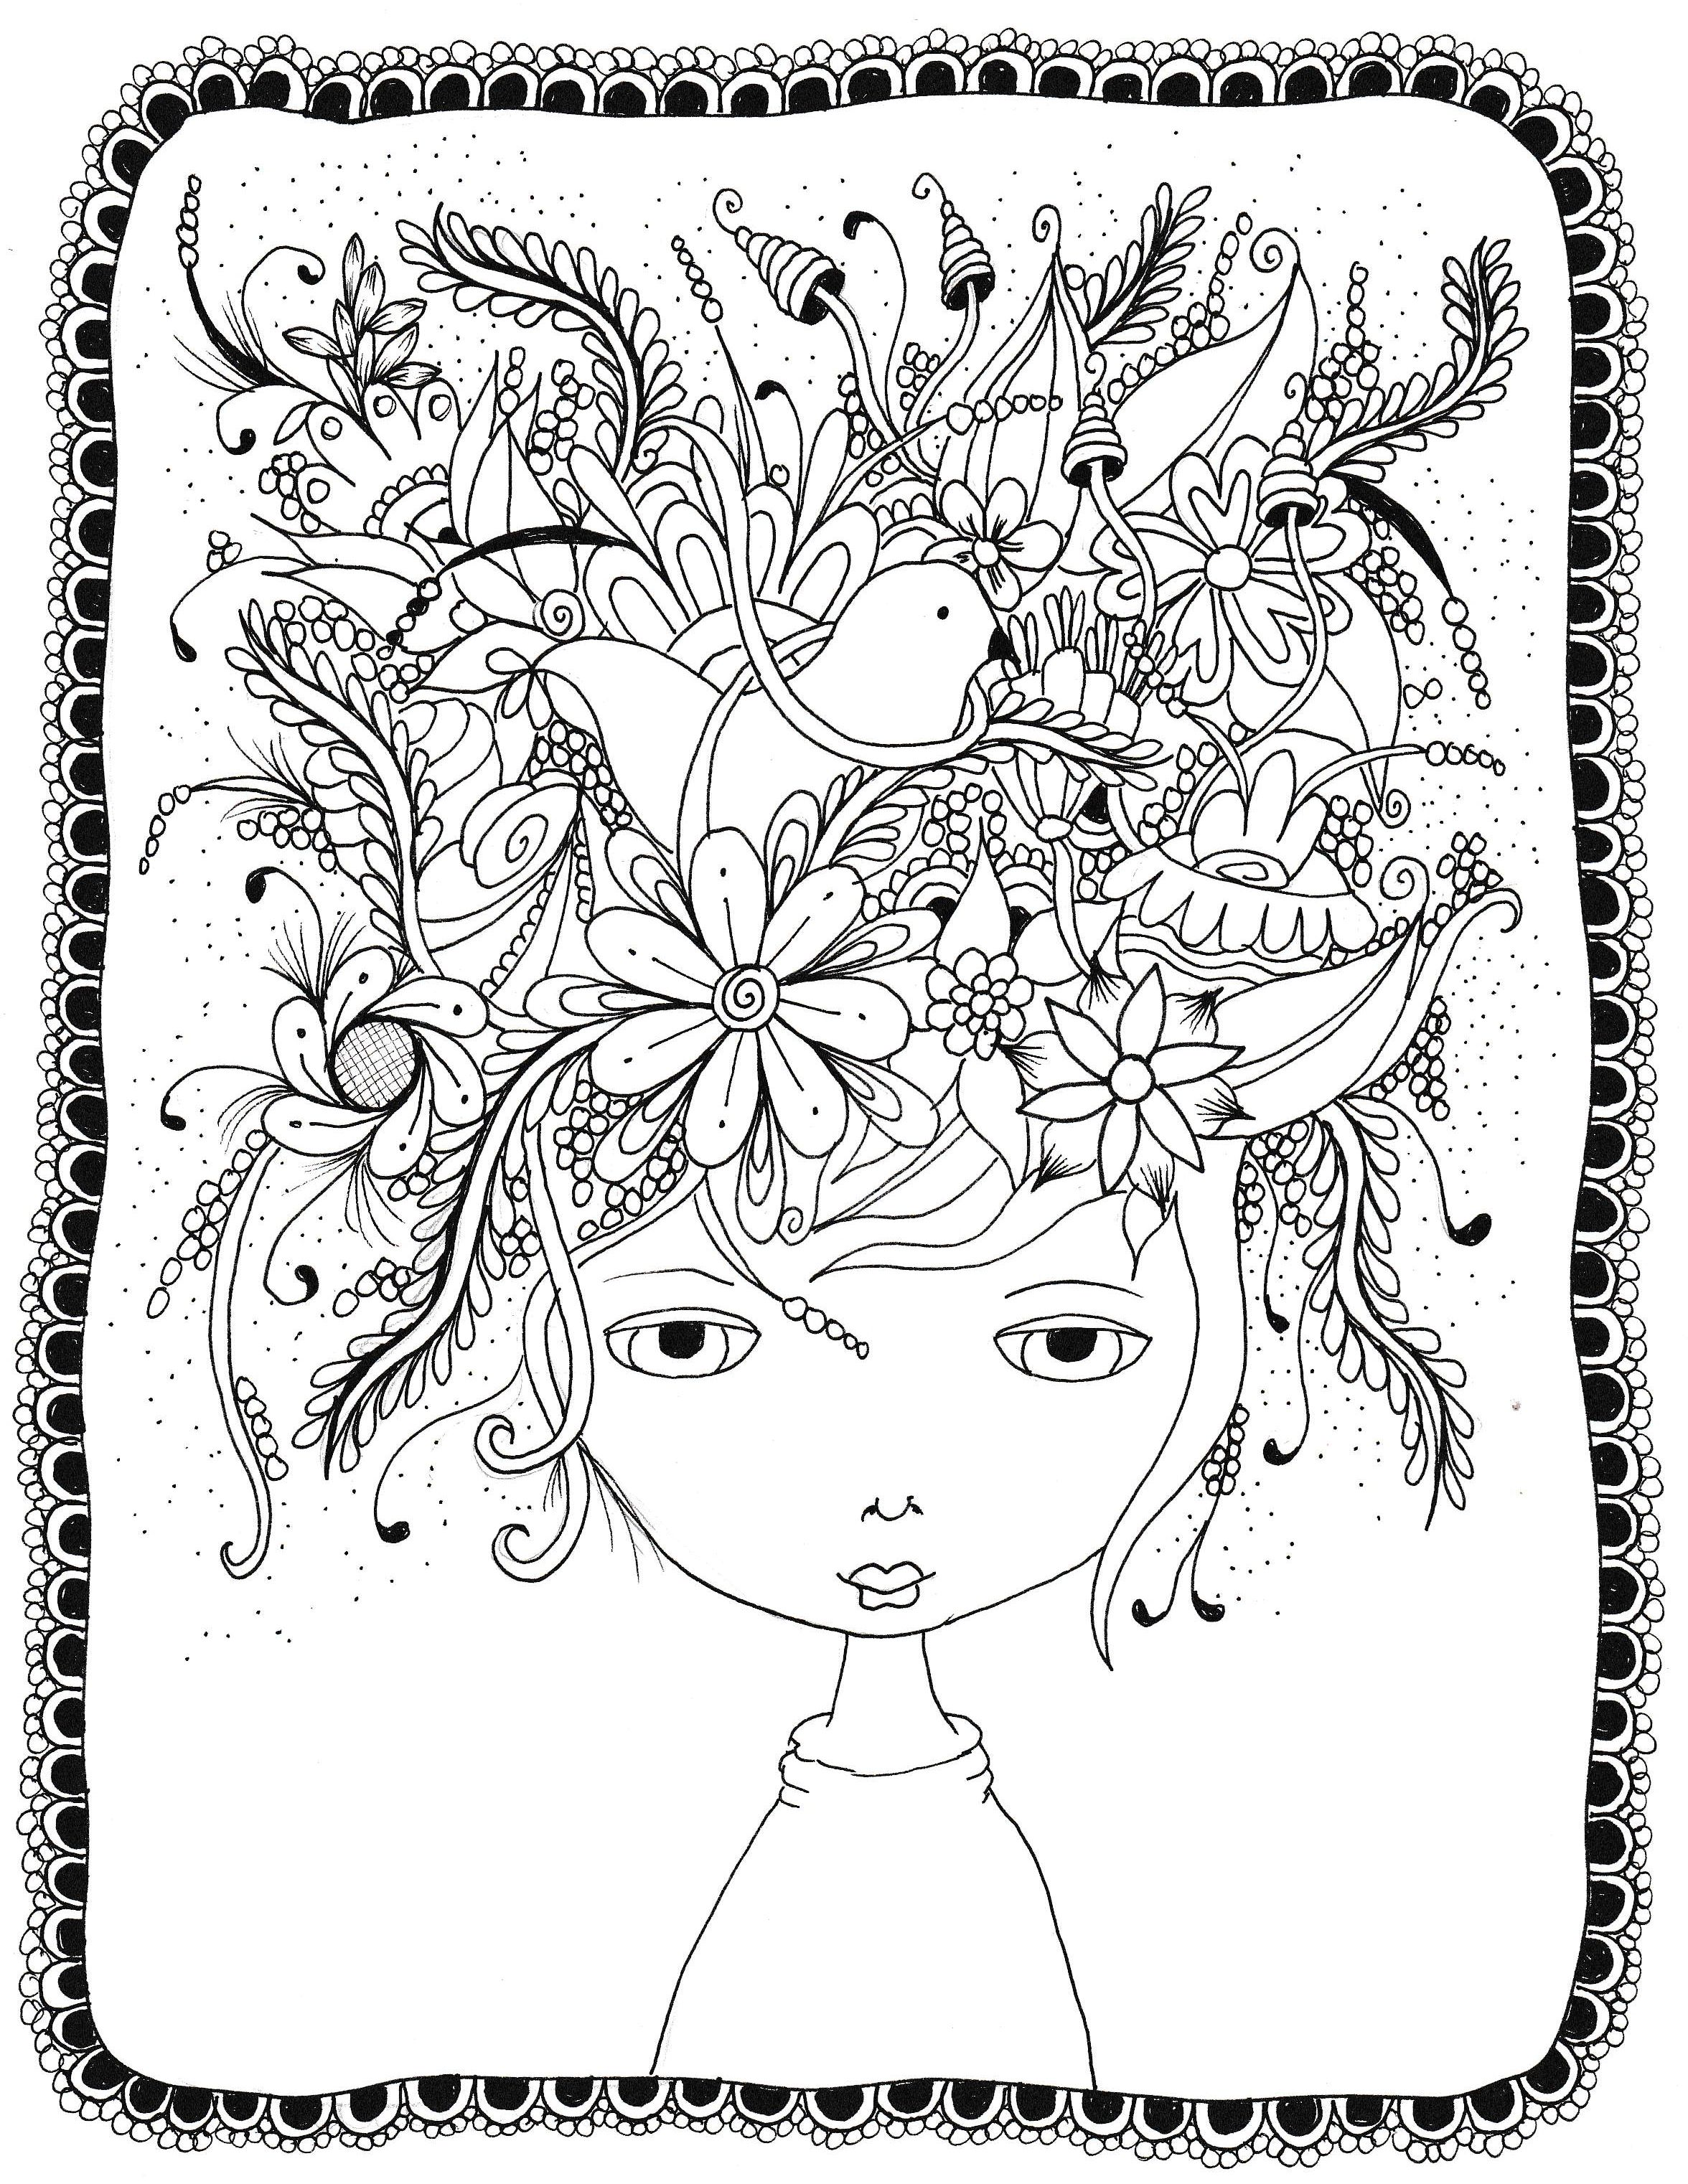 Crazy Hair Day Doodle Free Coloring Page For Adults